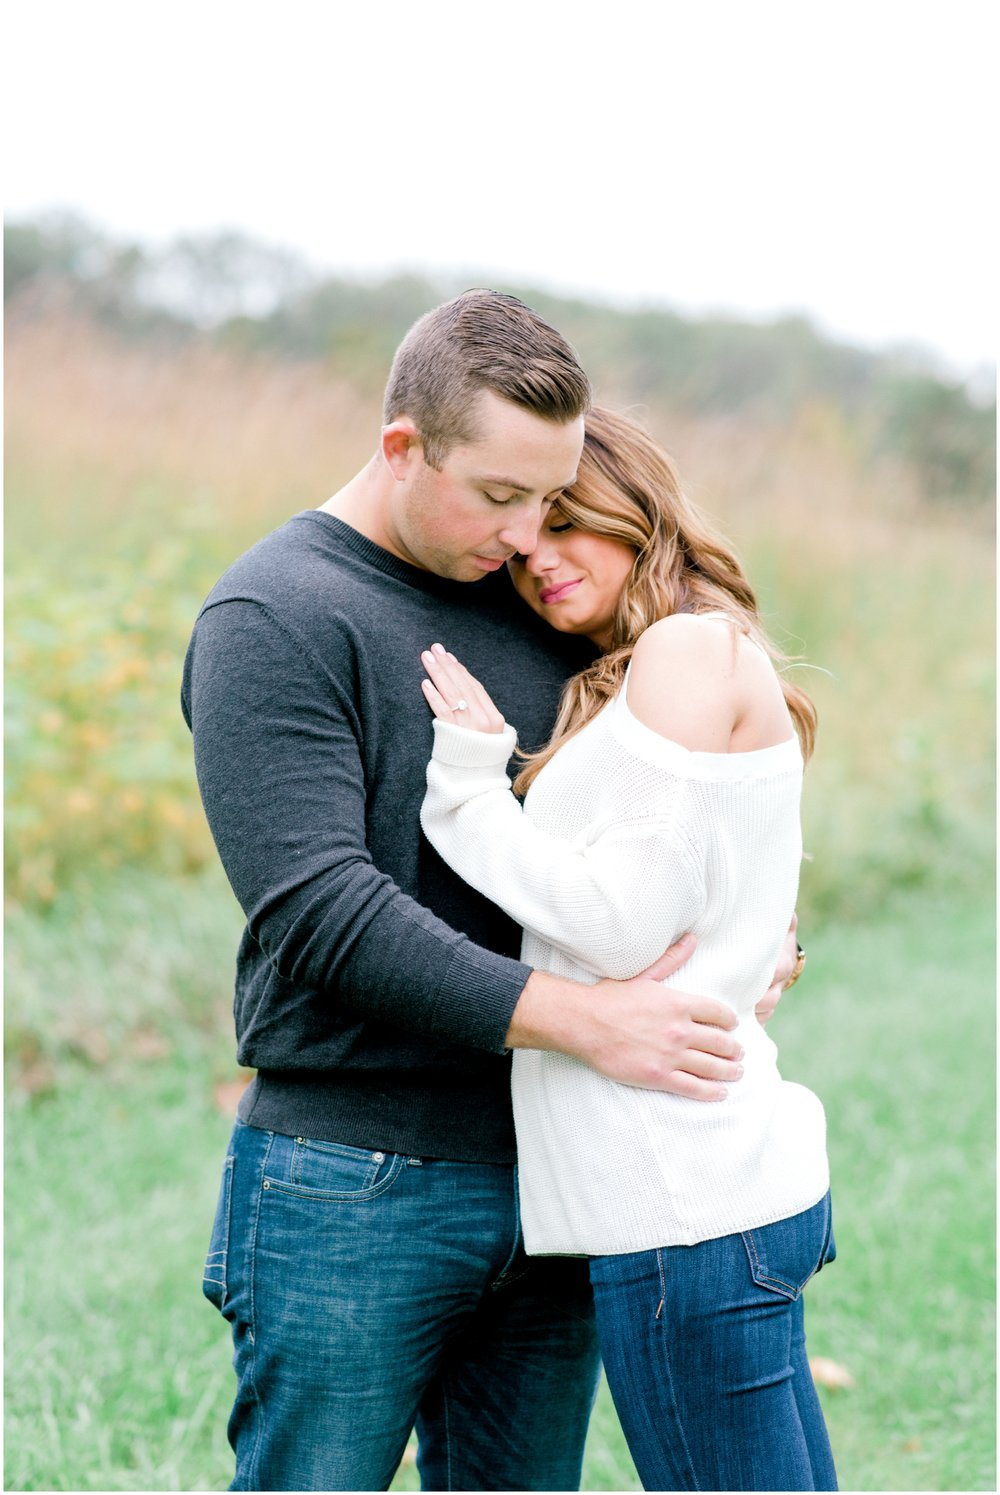 Fall Springton Manor Farm Engagement Session - Krista Brackin Photography_0026.jpg